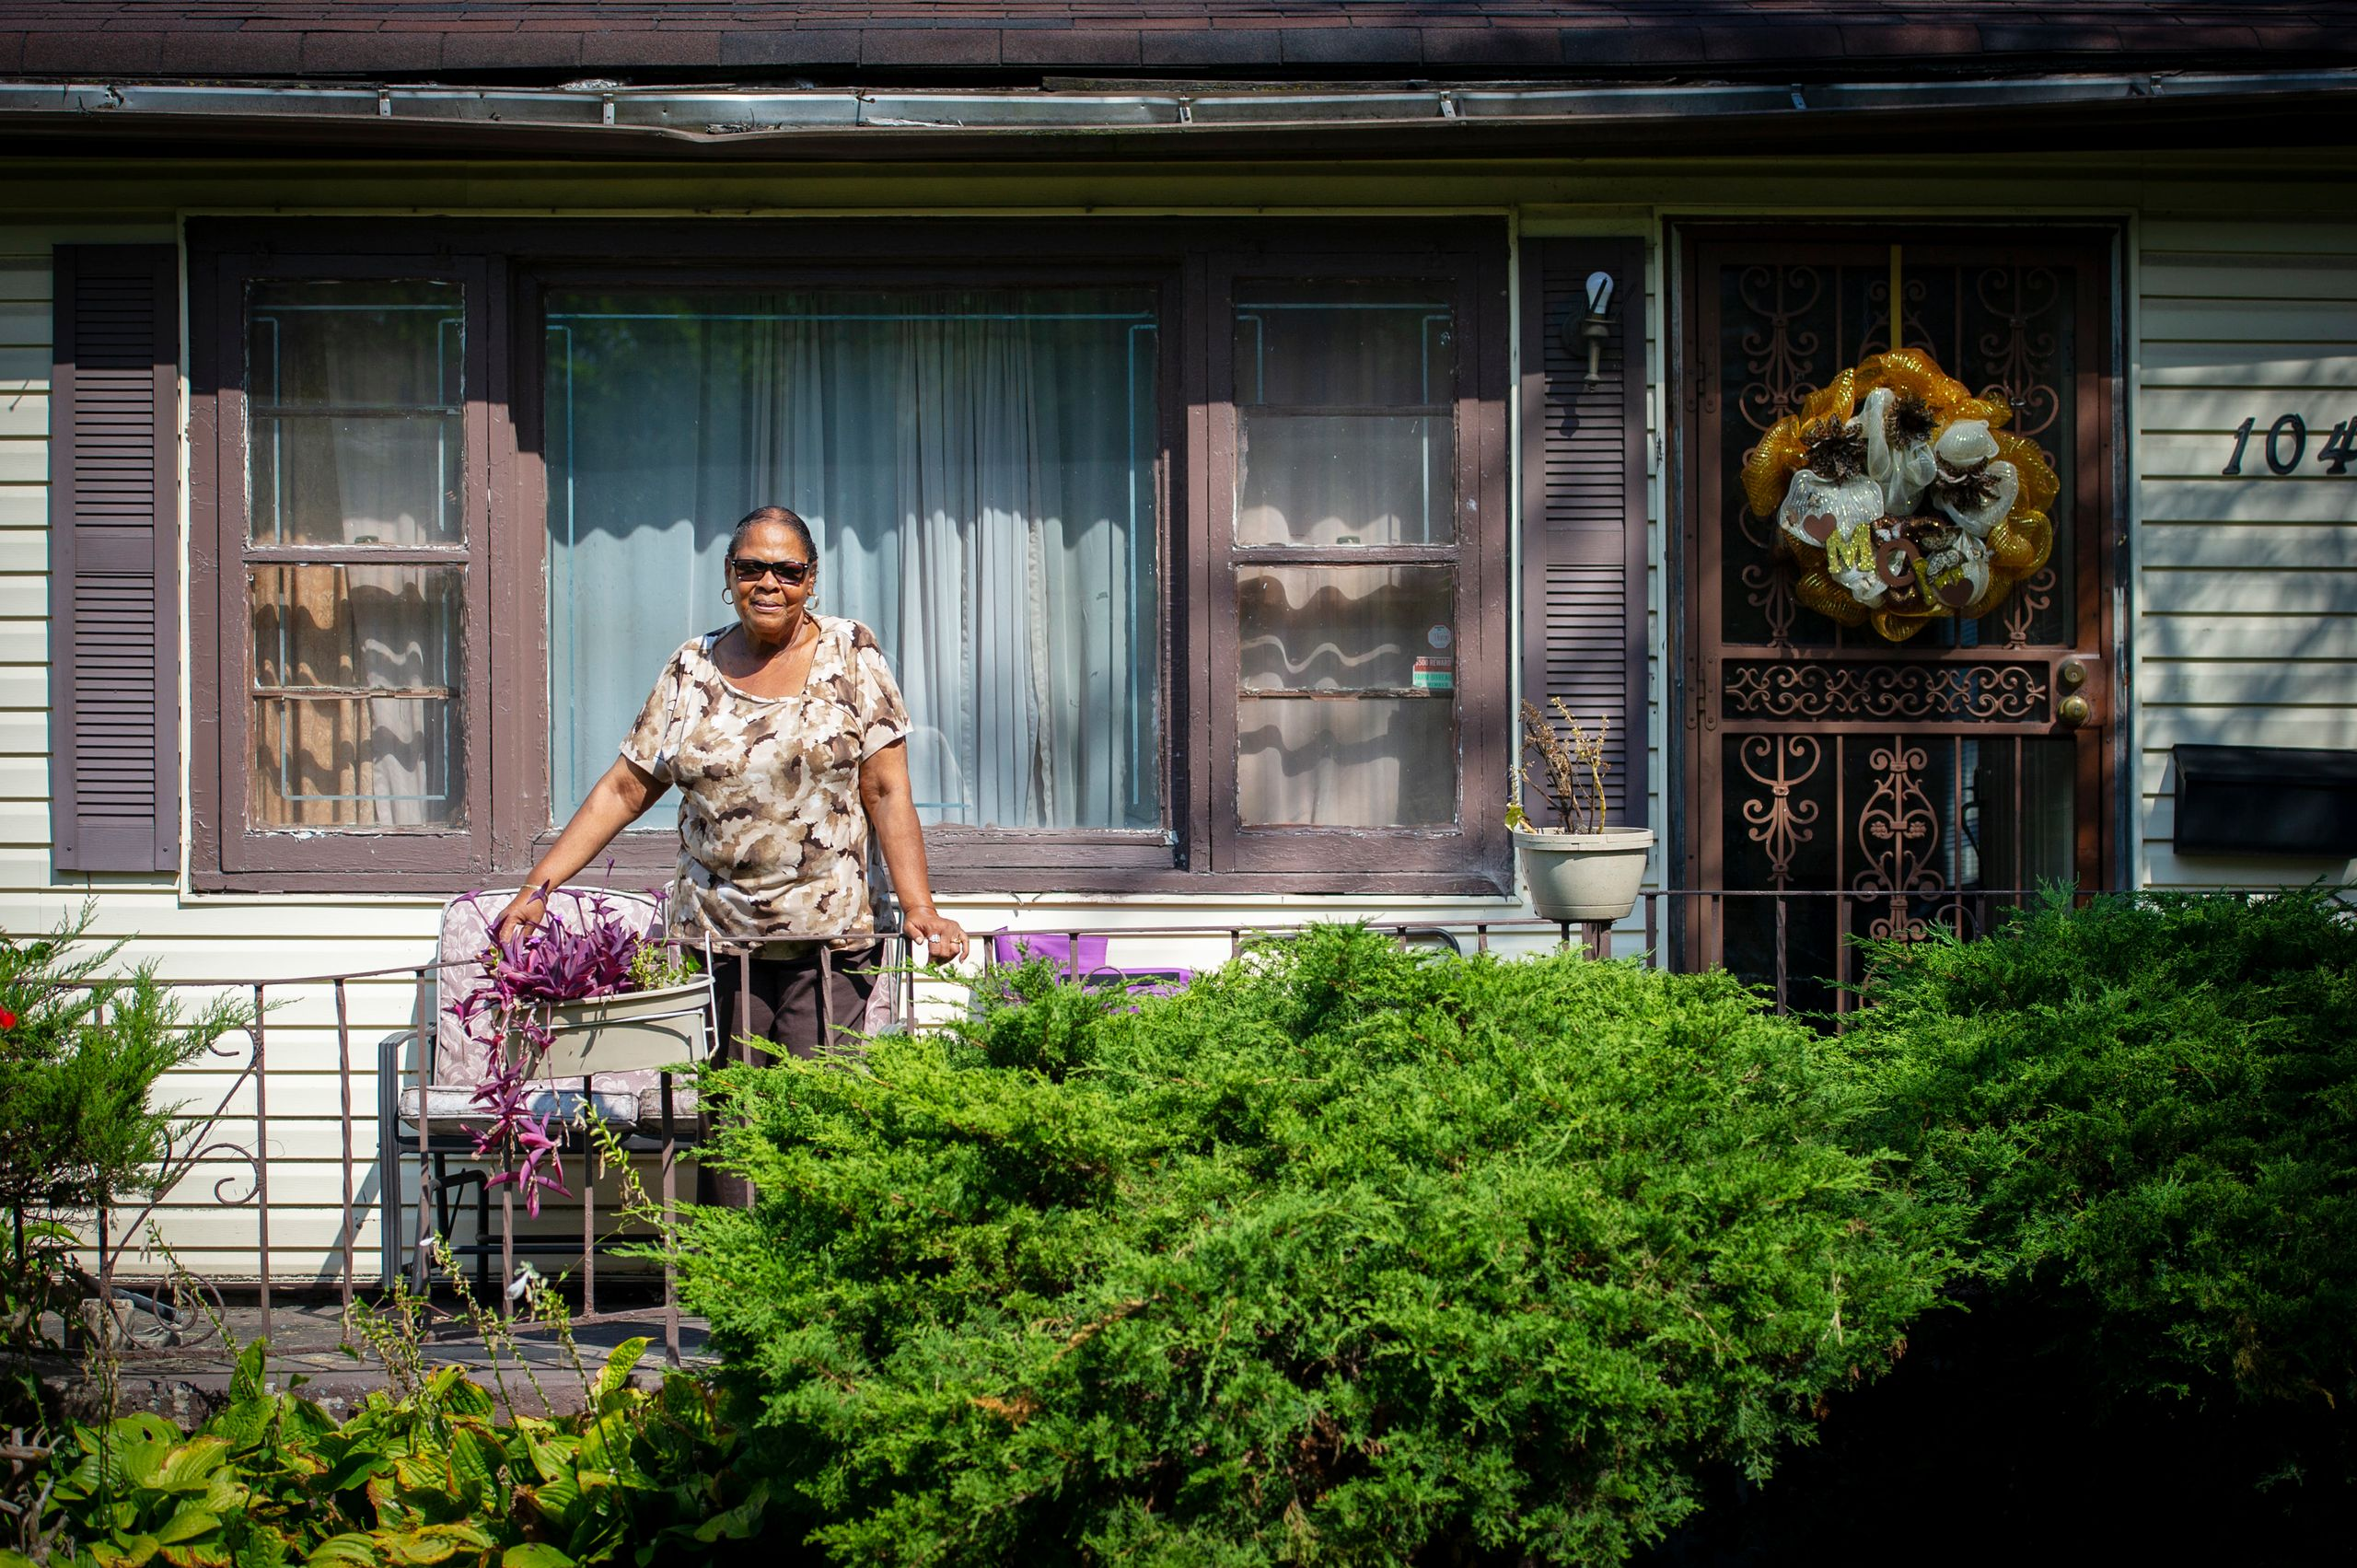 Ida Sain, 75, stands on the front porch of her house on Sept. 19, 2018. It's been her home since 1972. Behind her property, a